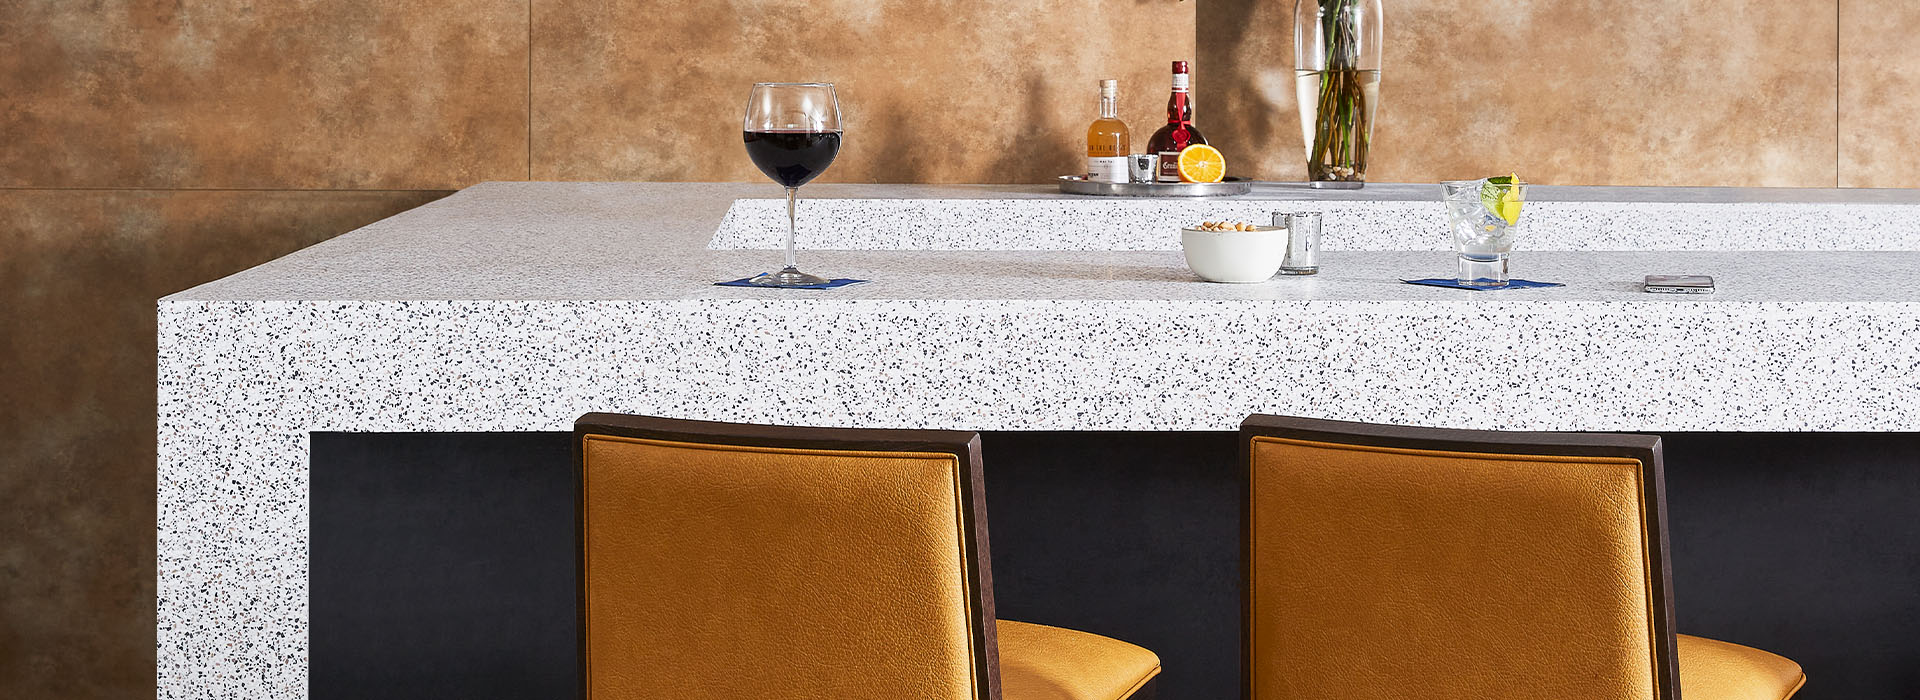 412 Dalmata Terrazzo Matrix table with drinks and stools